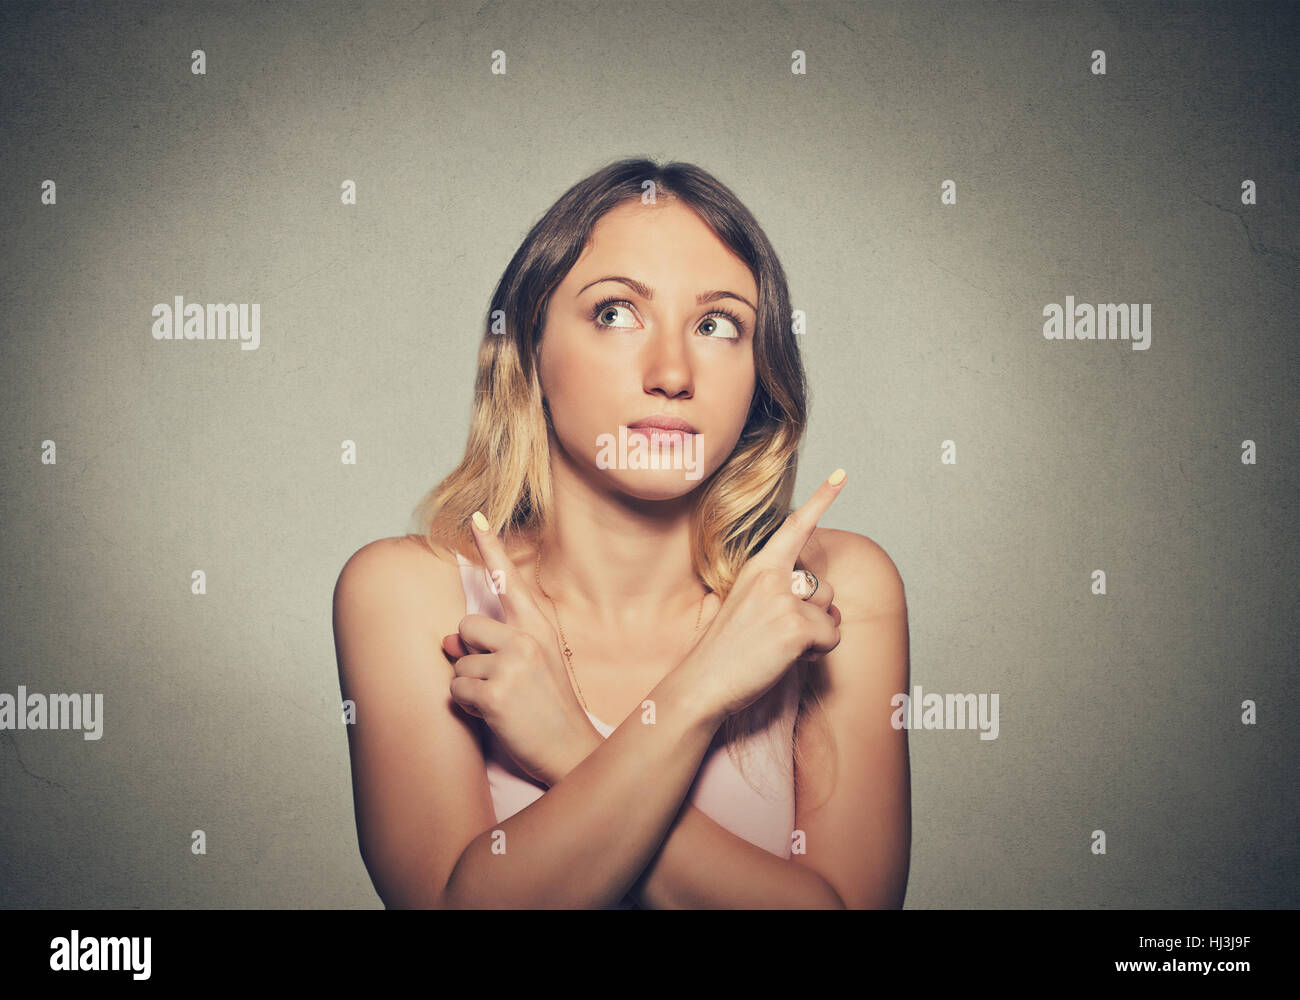 Confused thinking woman isolated on gray wall background - Stock Image